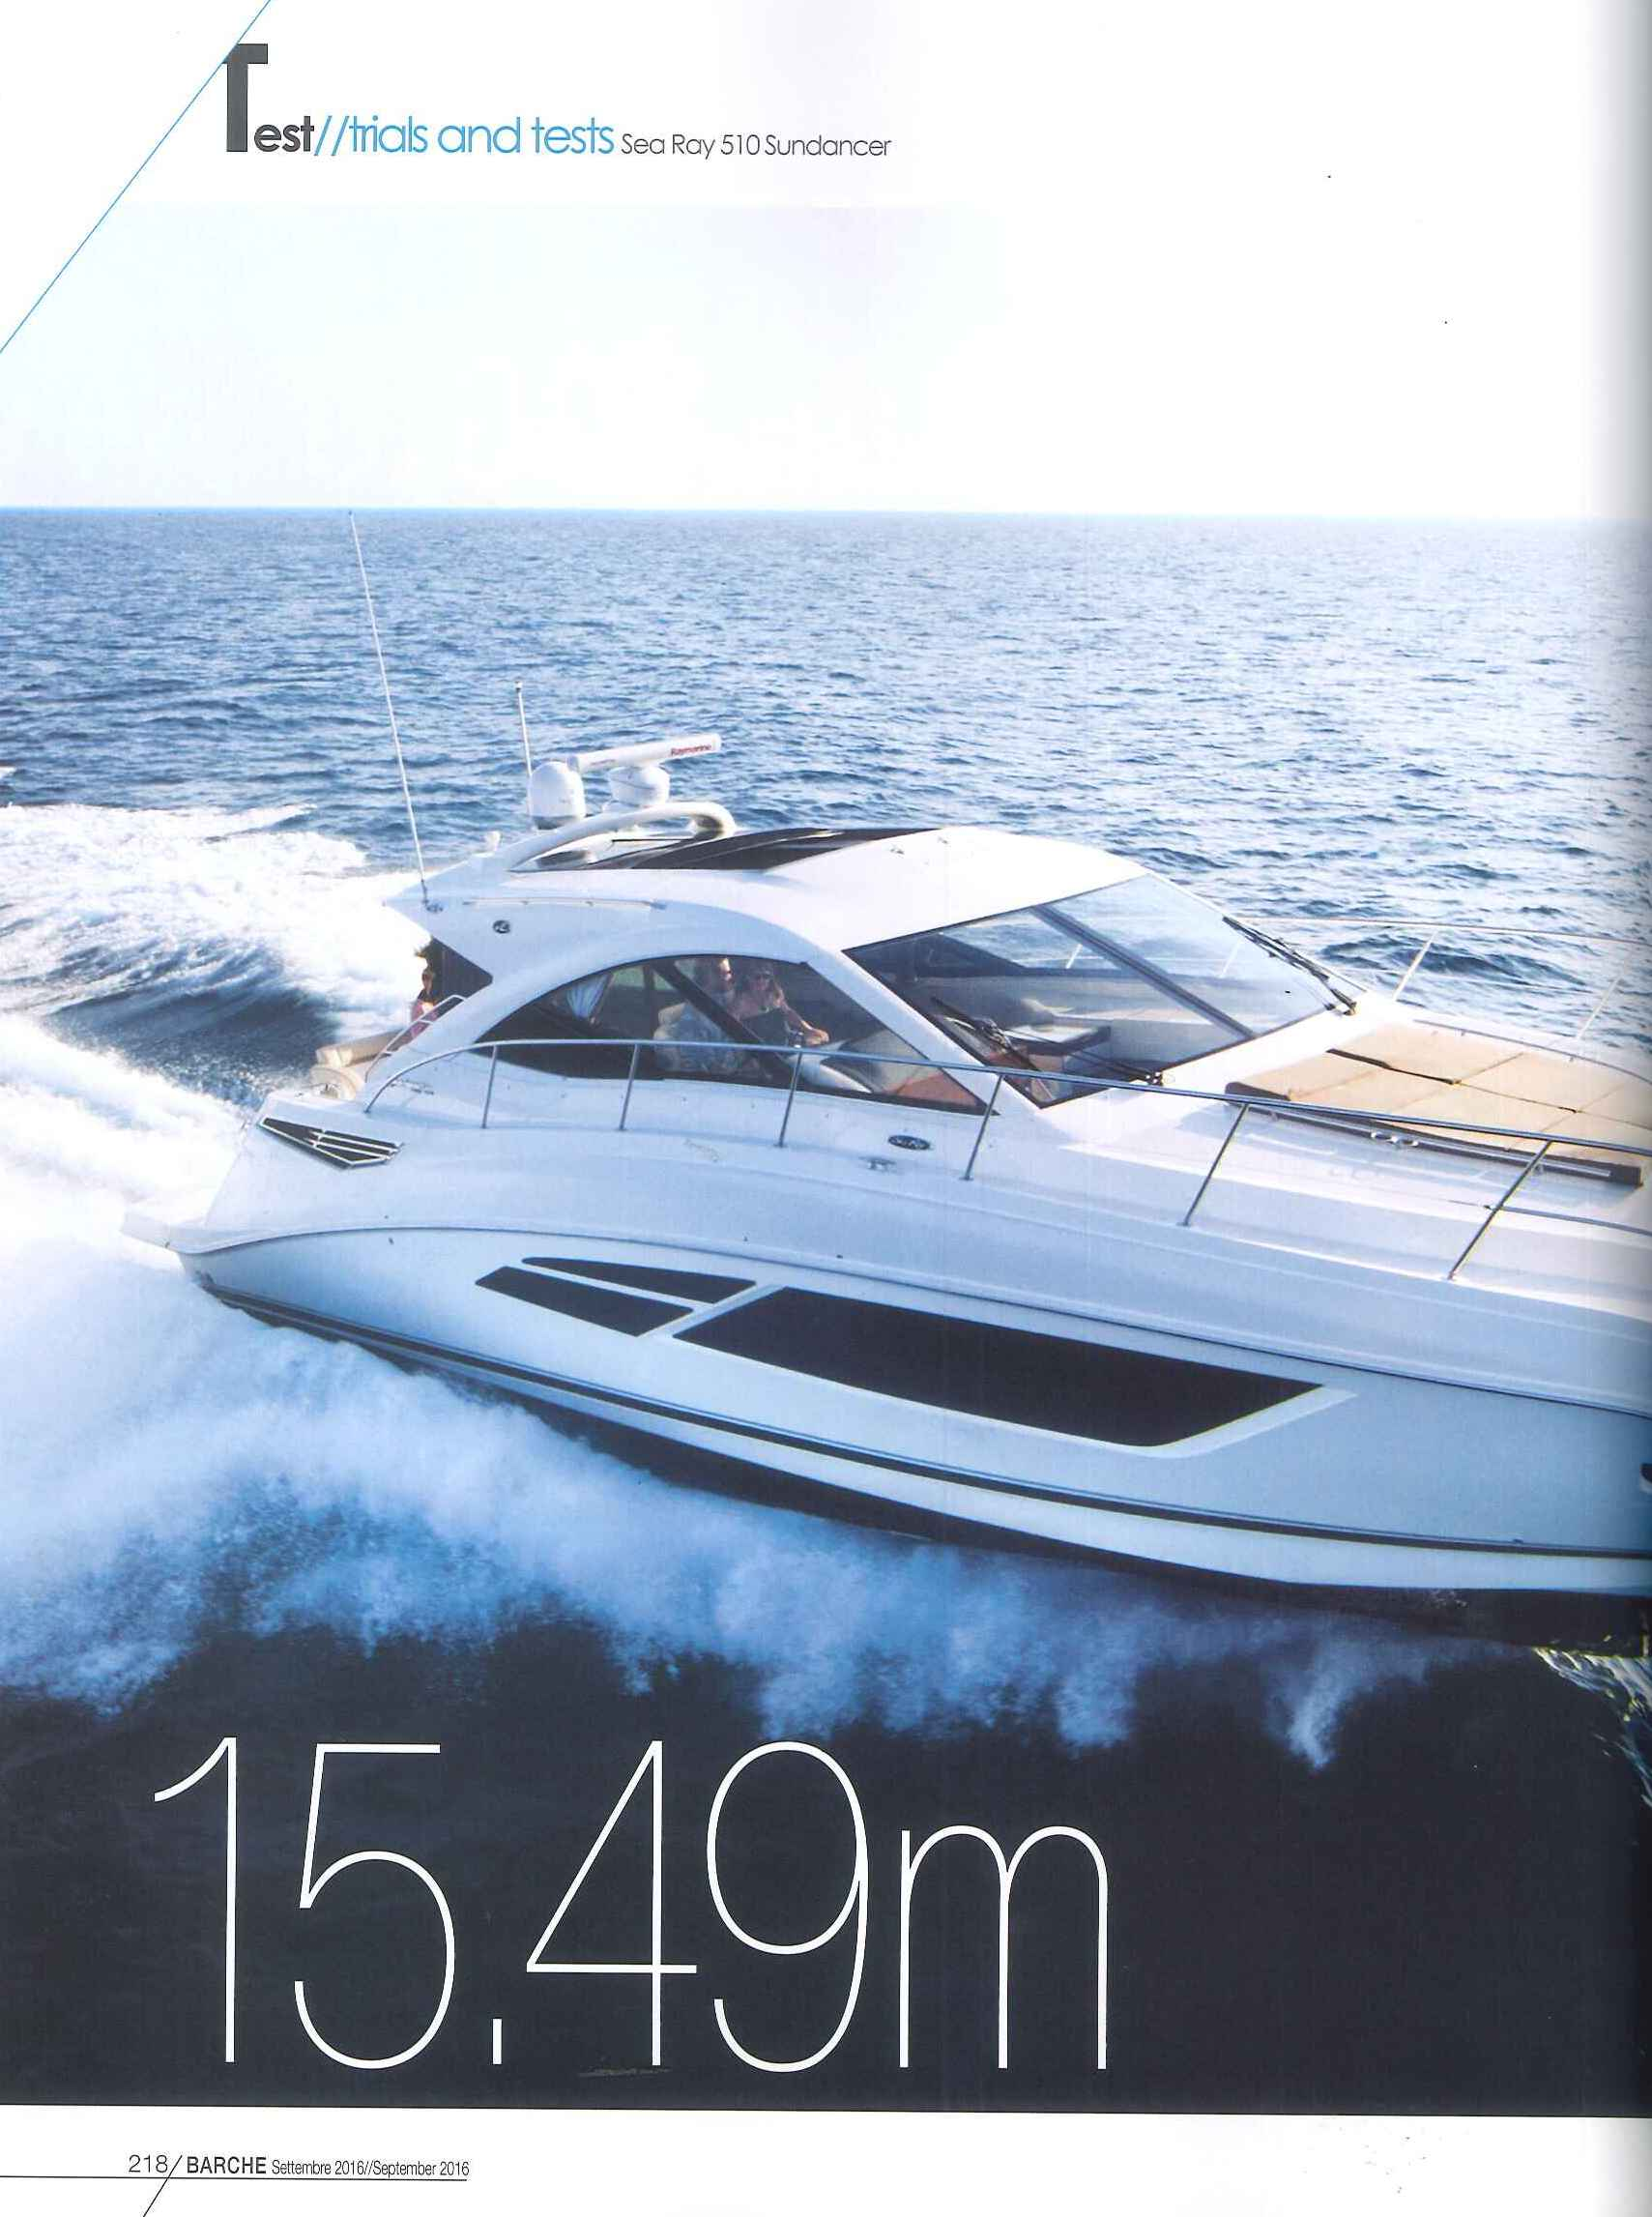 2016 09 PRESS SEA RAY 510 SUNDACER BARCHE (1).jpg